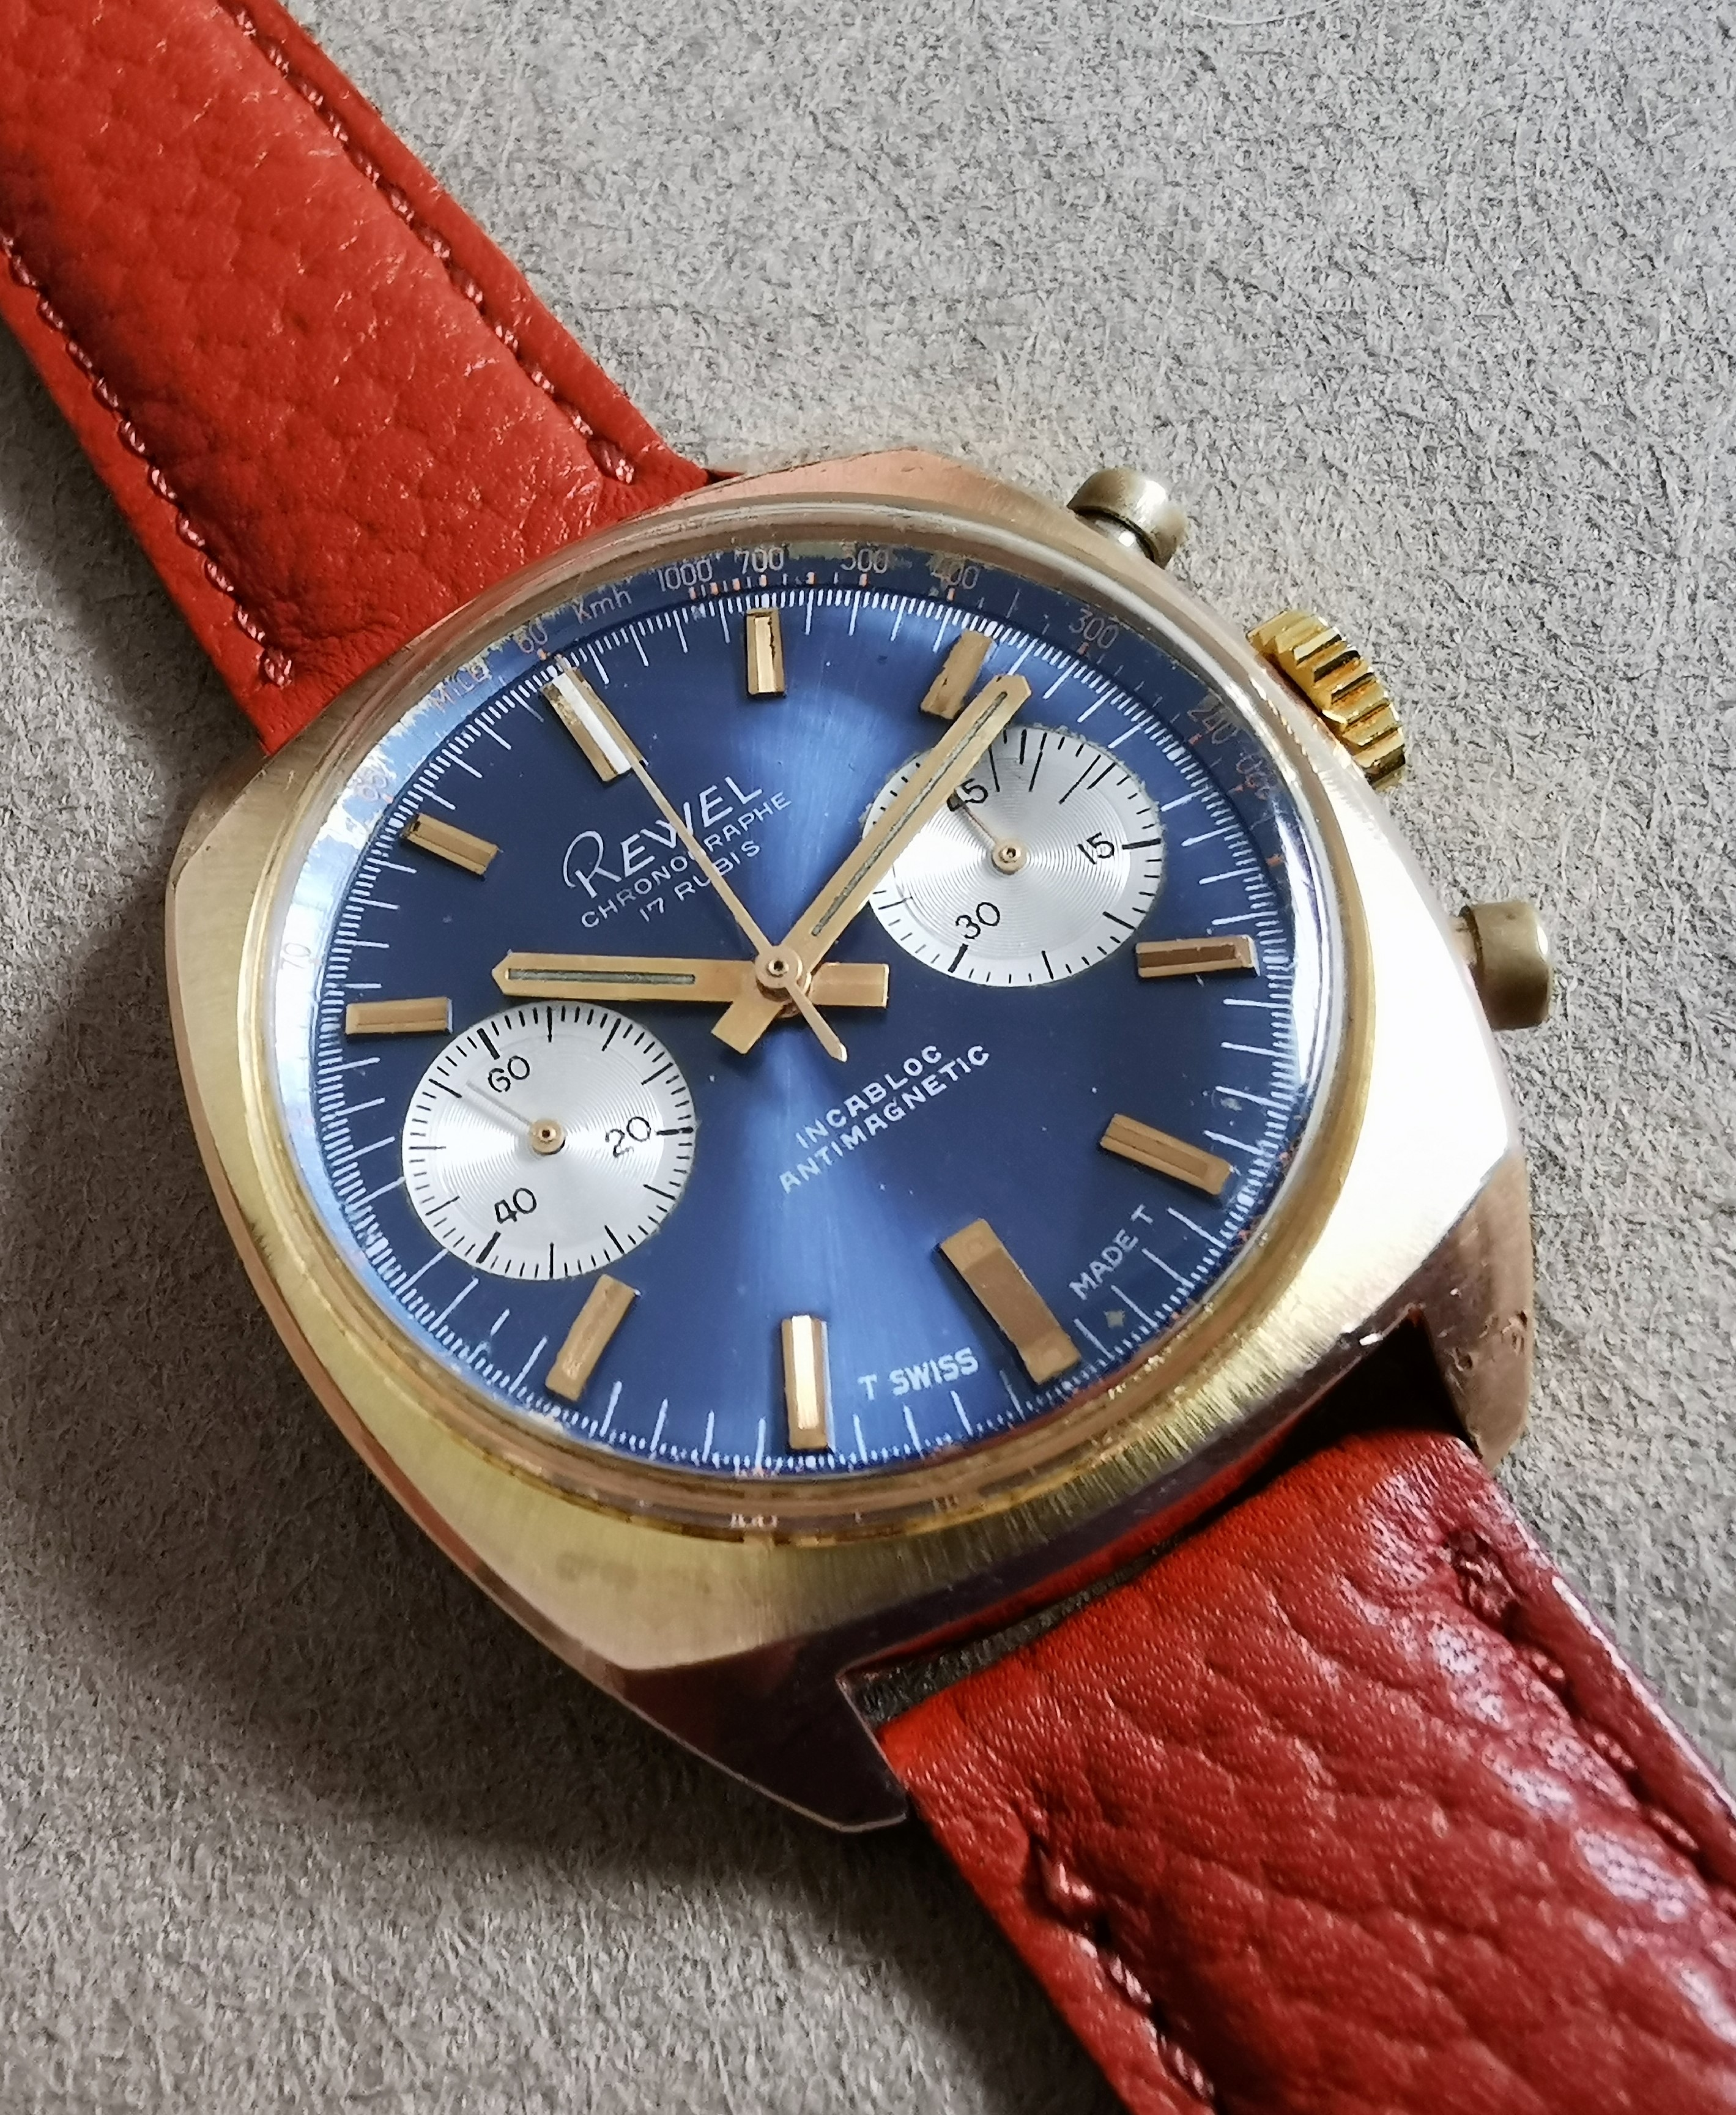 Anonimo Rewel Chronograph rose gold plated blu dial valjoux 7733 mm 36 | San Giorgio a Cremano